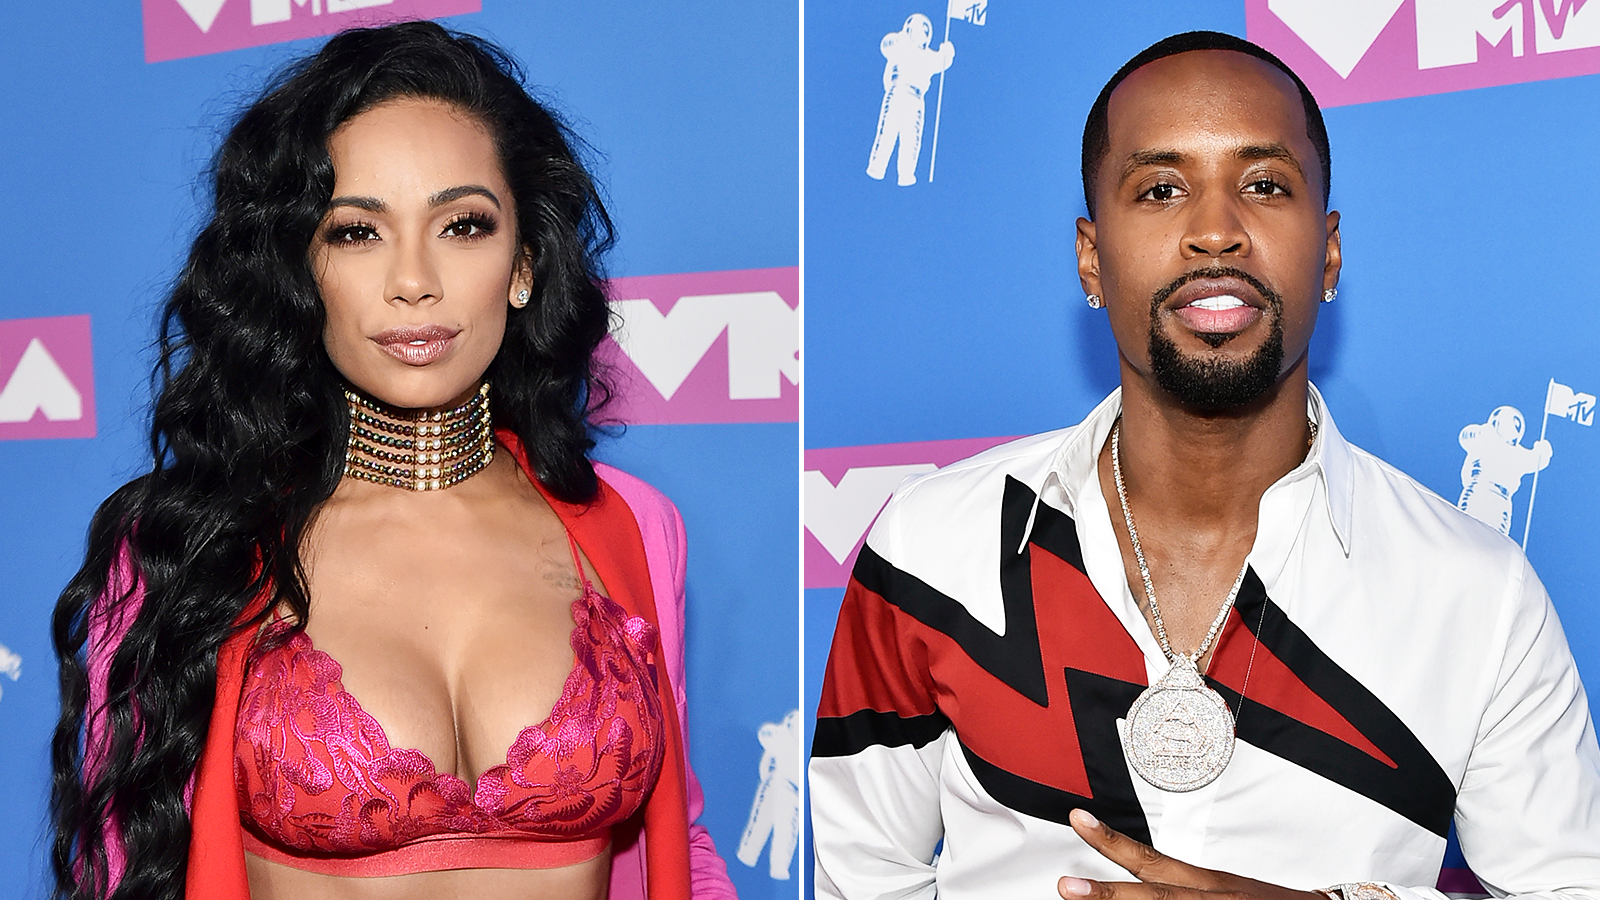 safarees-video-featuring-erica-mena-riding-with-him-has-fans-laughing-their-hearts-out-and-congratulating-her